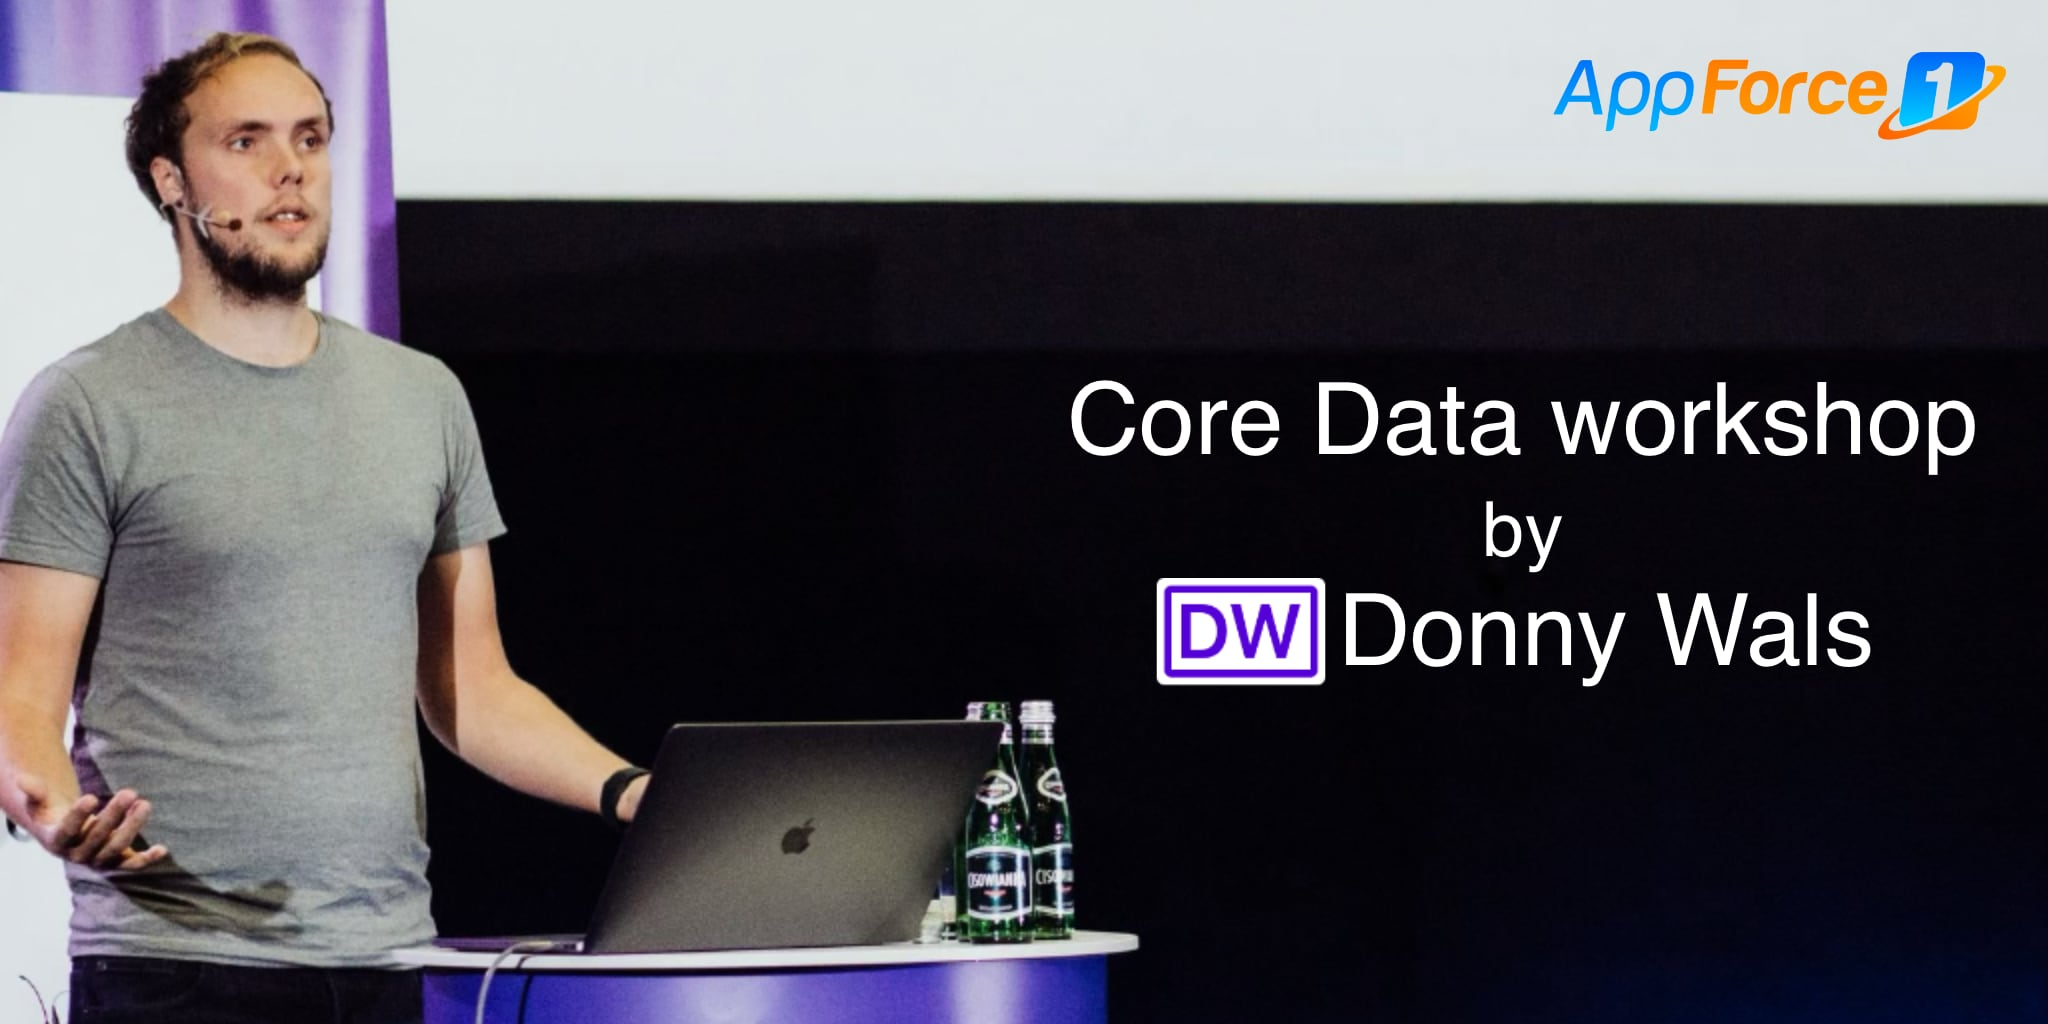 Core Data workshop with Donny Wals